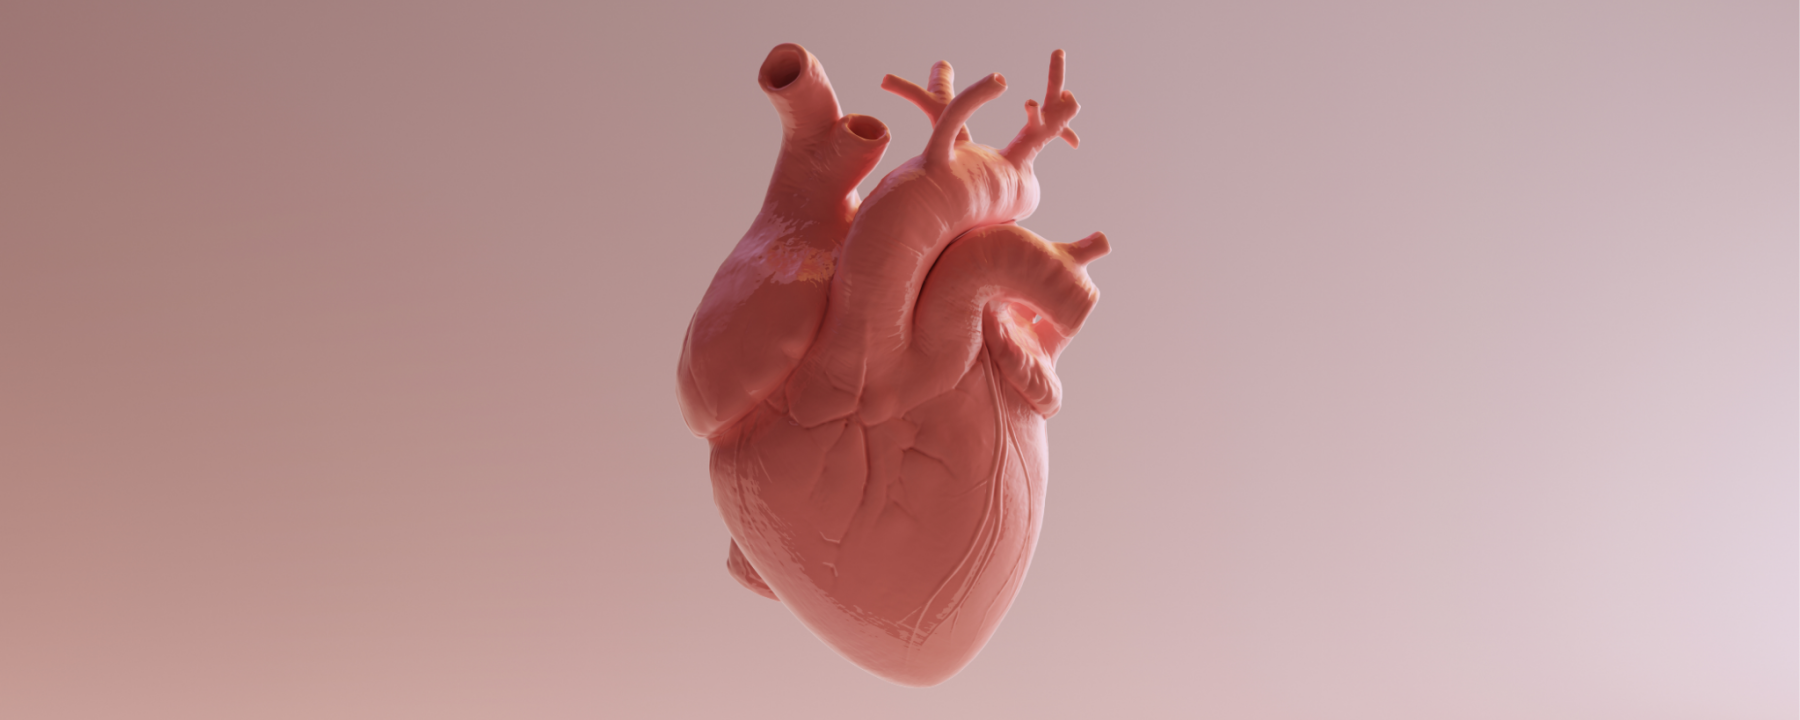 Autopsies Show Varied Forms of Heart Damage in COVID-19 Patients